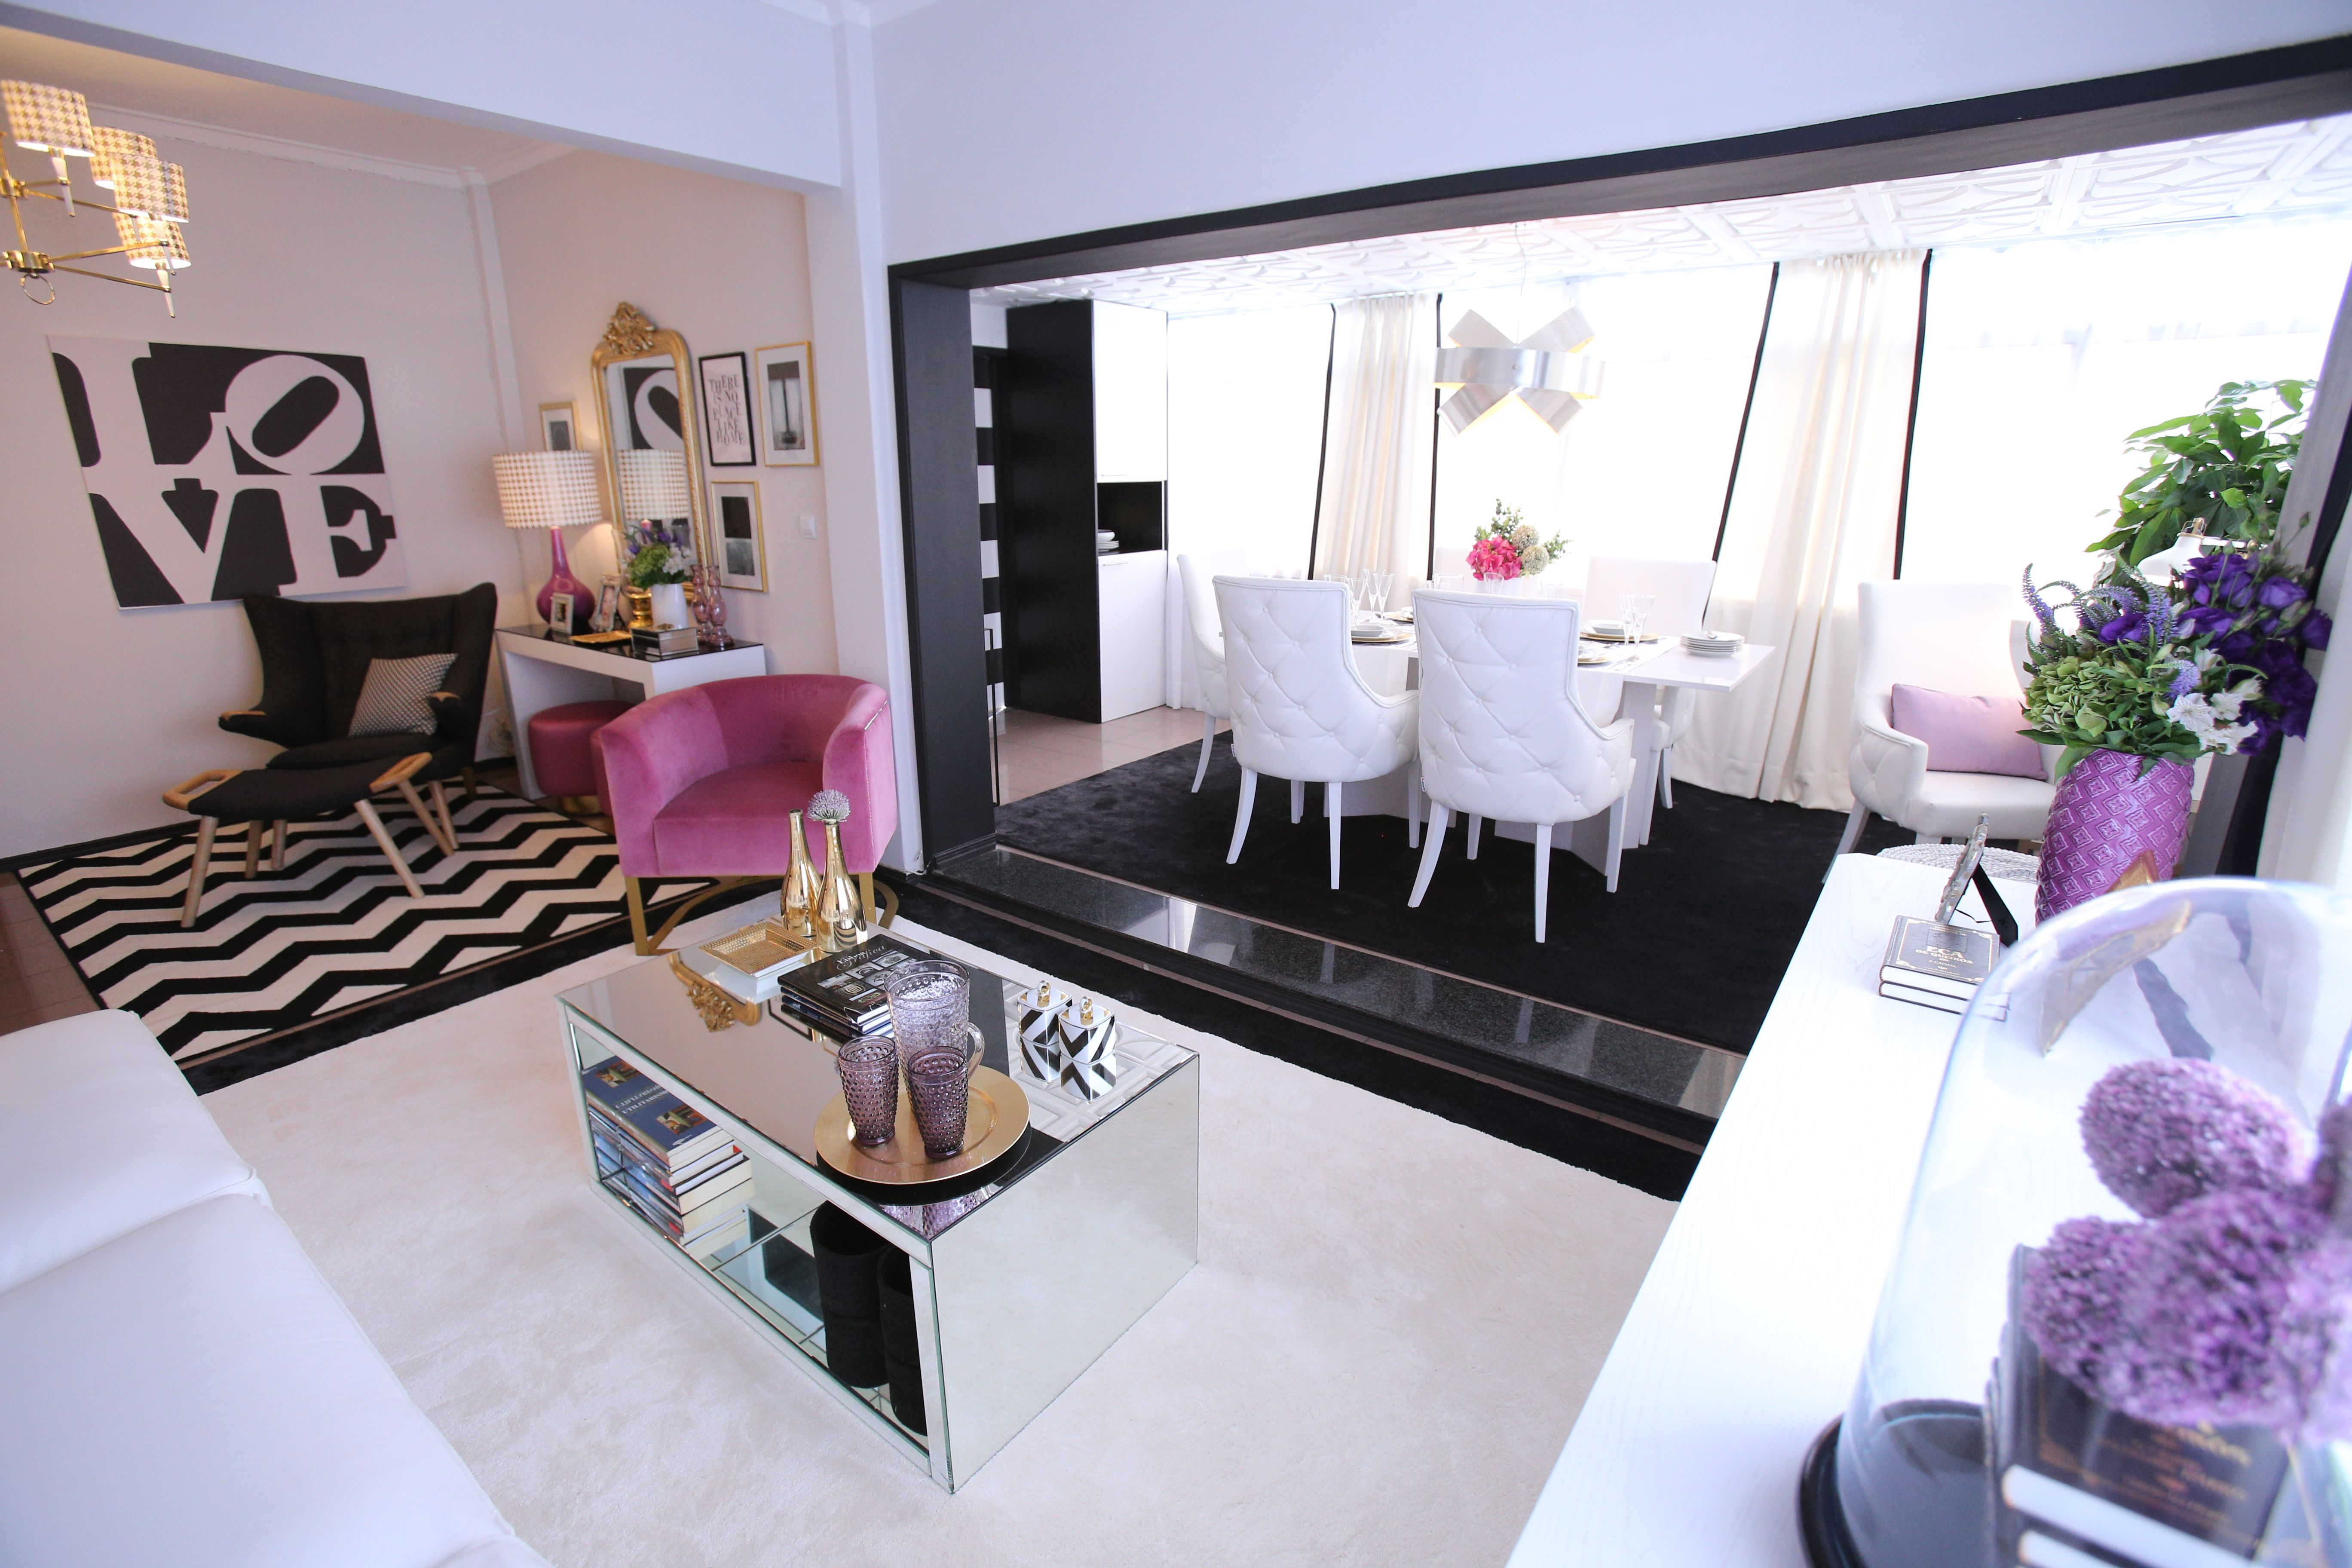 Ana Antunes | Sala De Estar | Living Room | Black White Gold Inspiration |  White Part 97